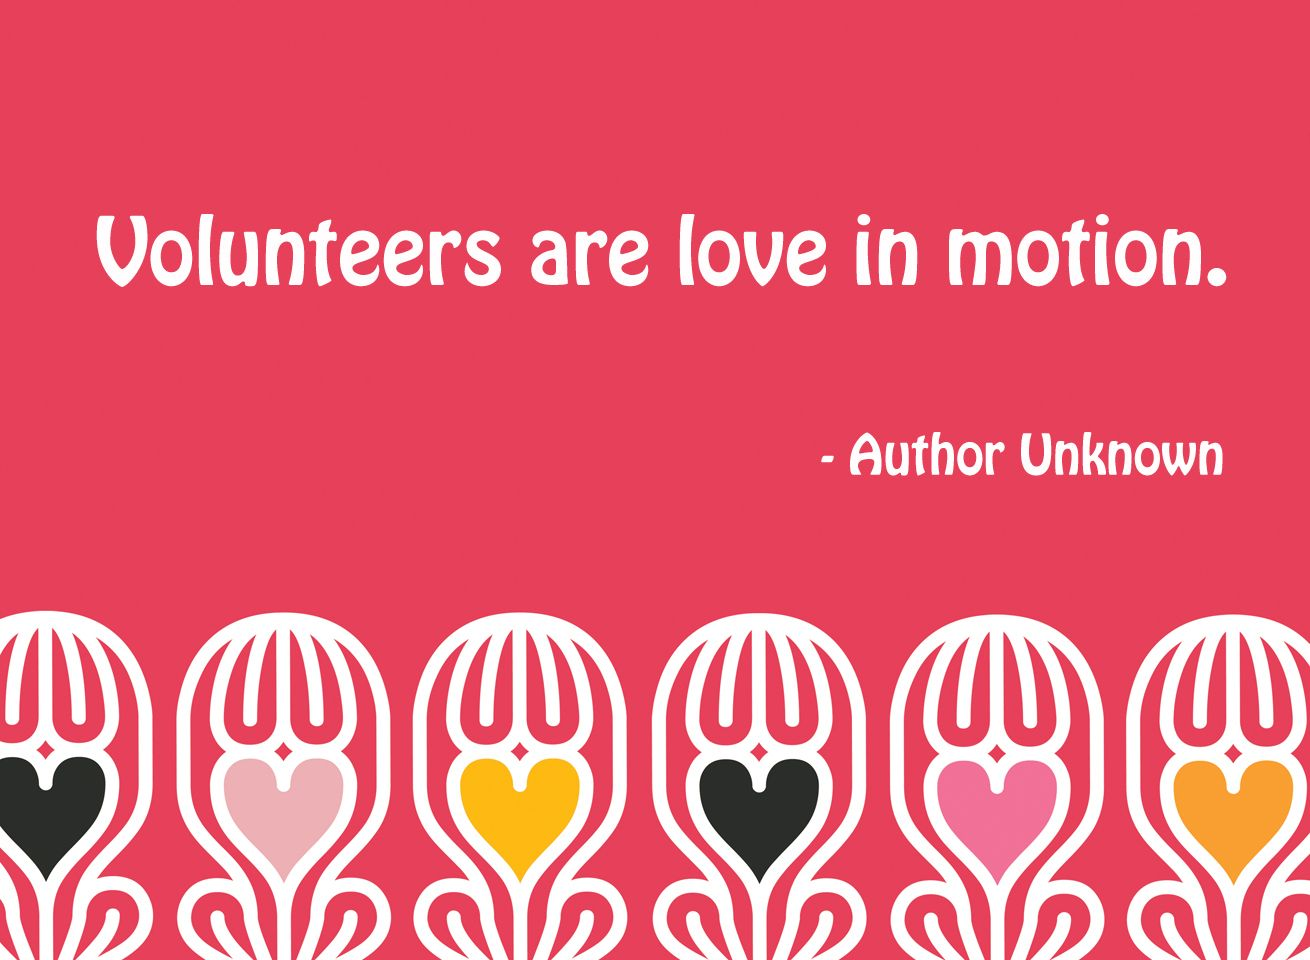 Volunteering Quotes Image Result For Quotes About Volunteering  Nami Spokane  Pinterest